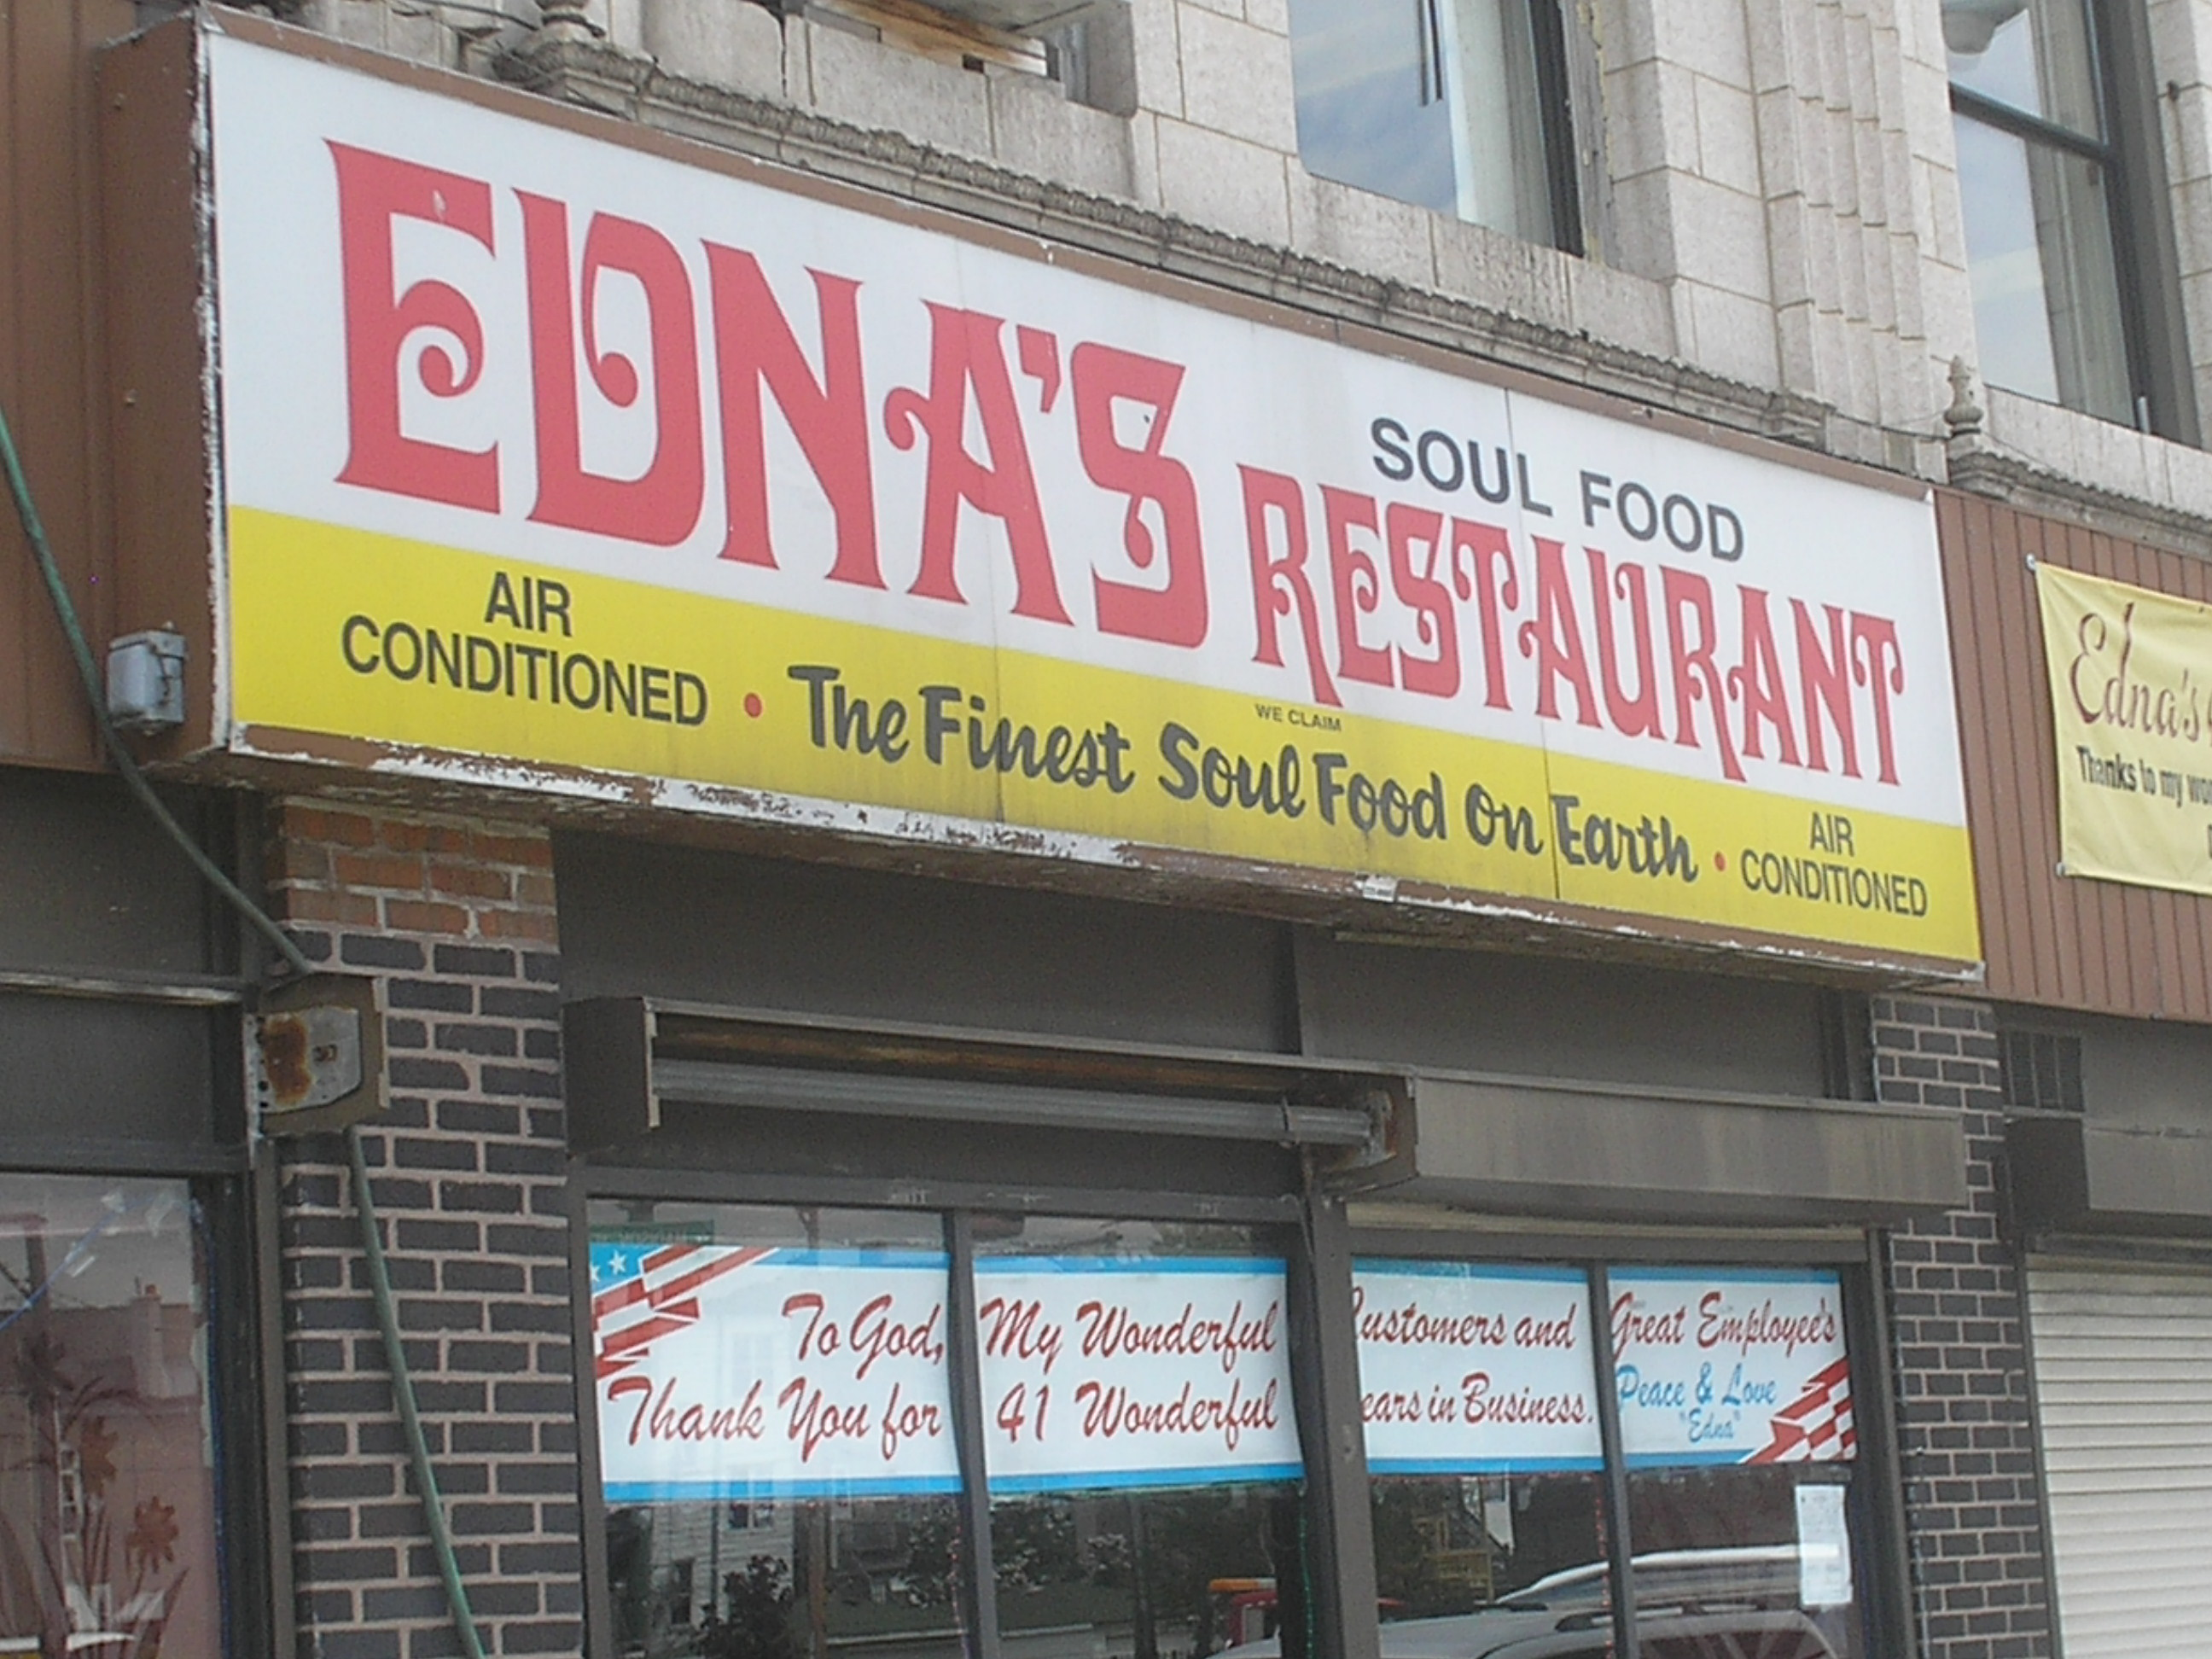 ednas front1 Food for Thought